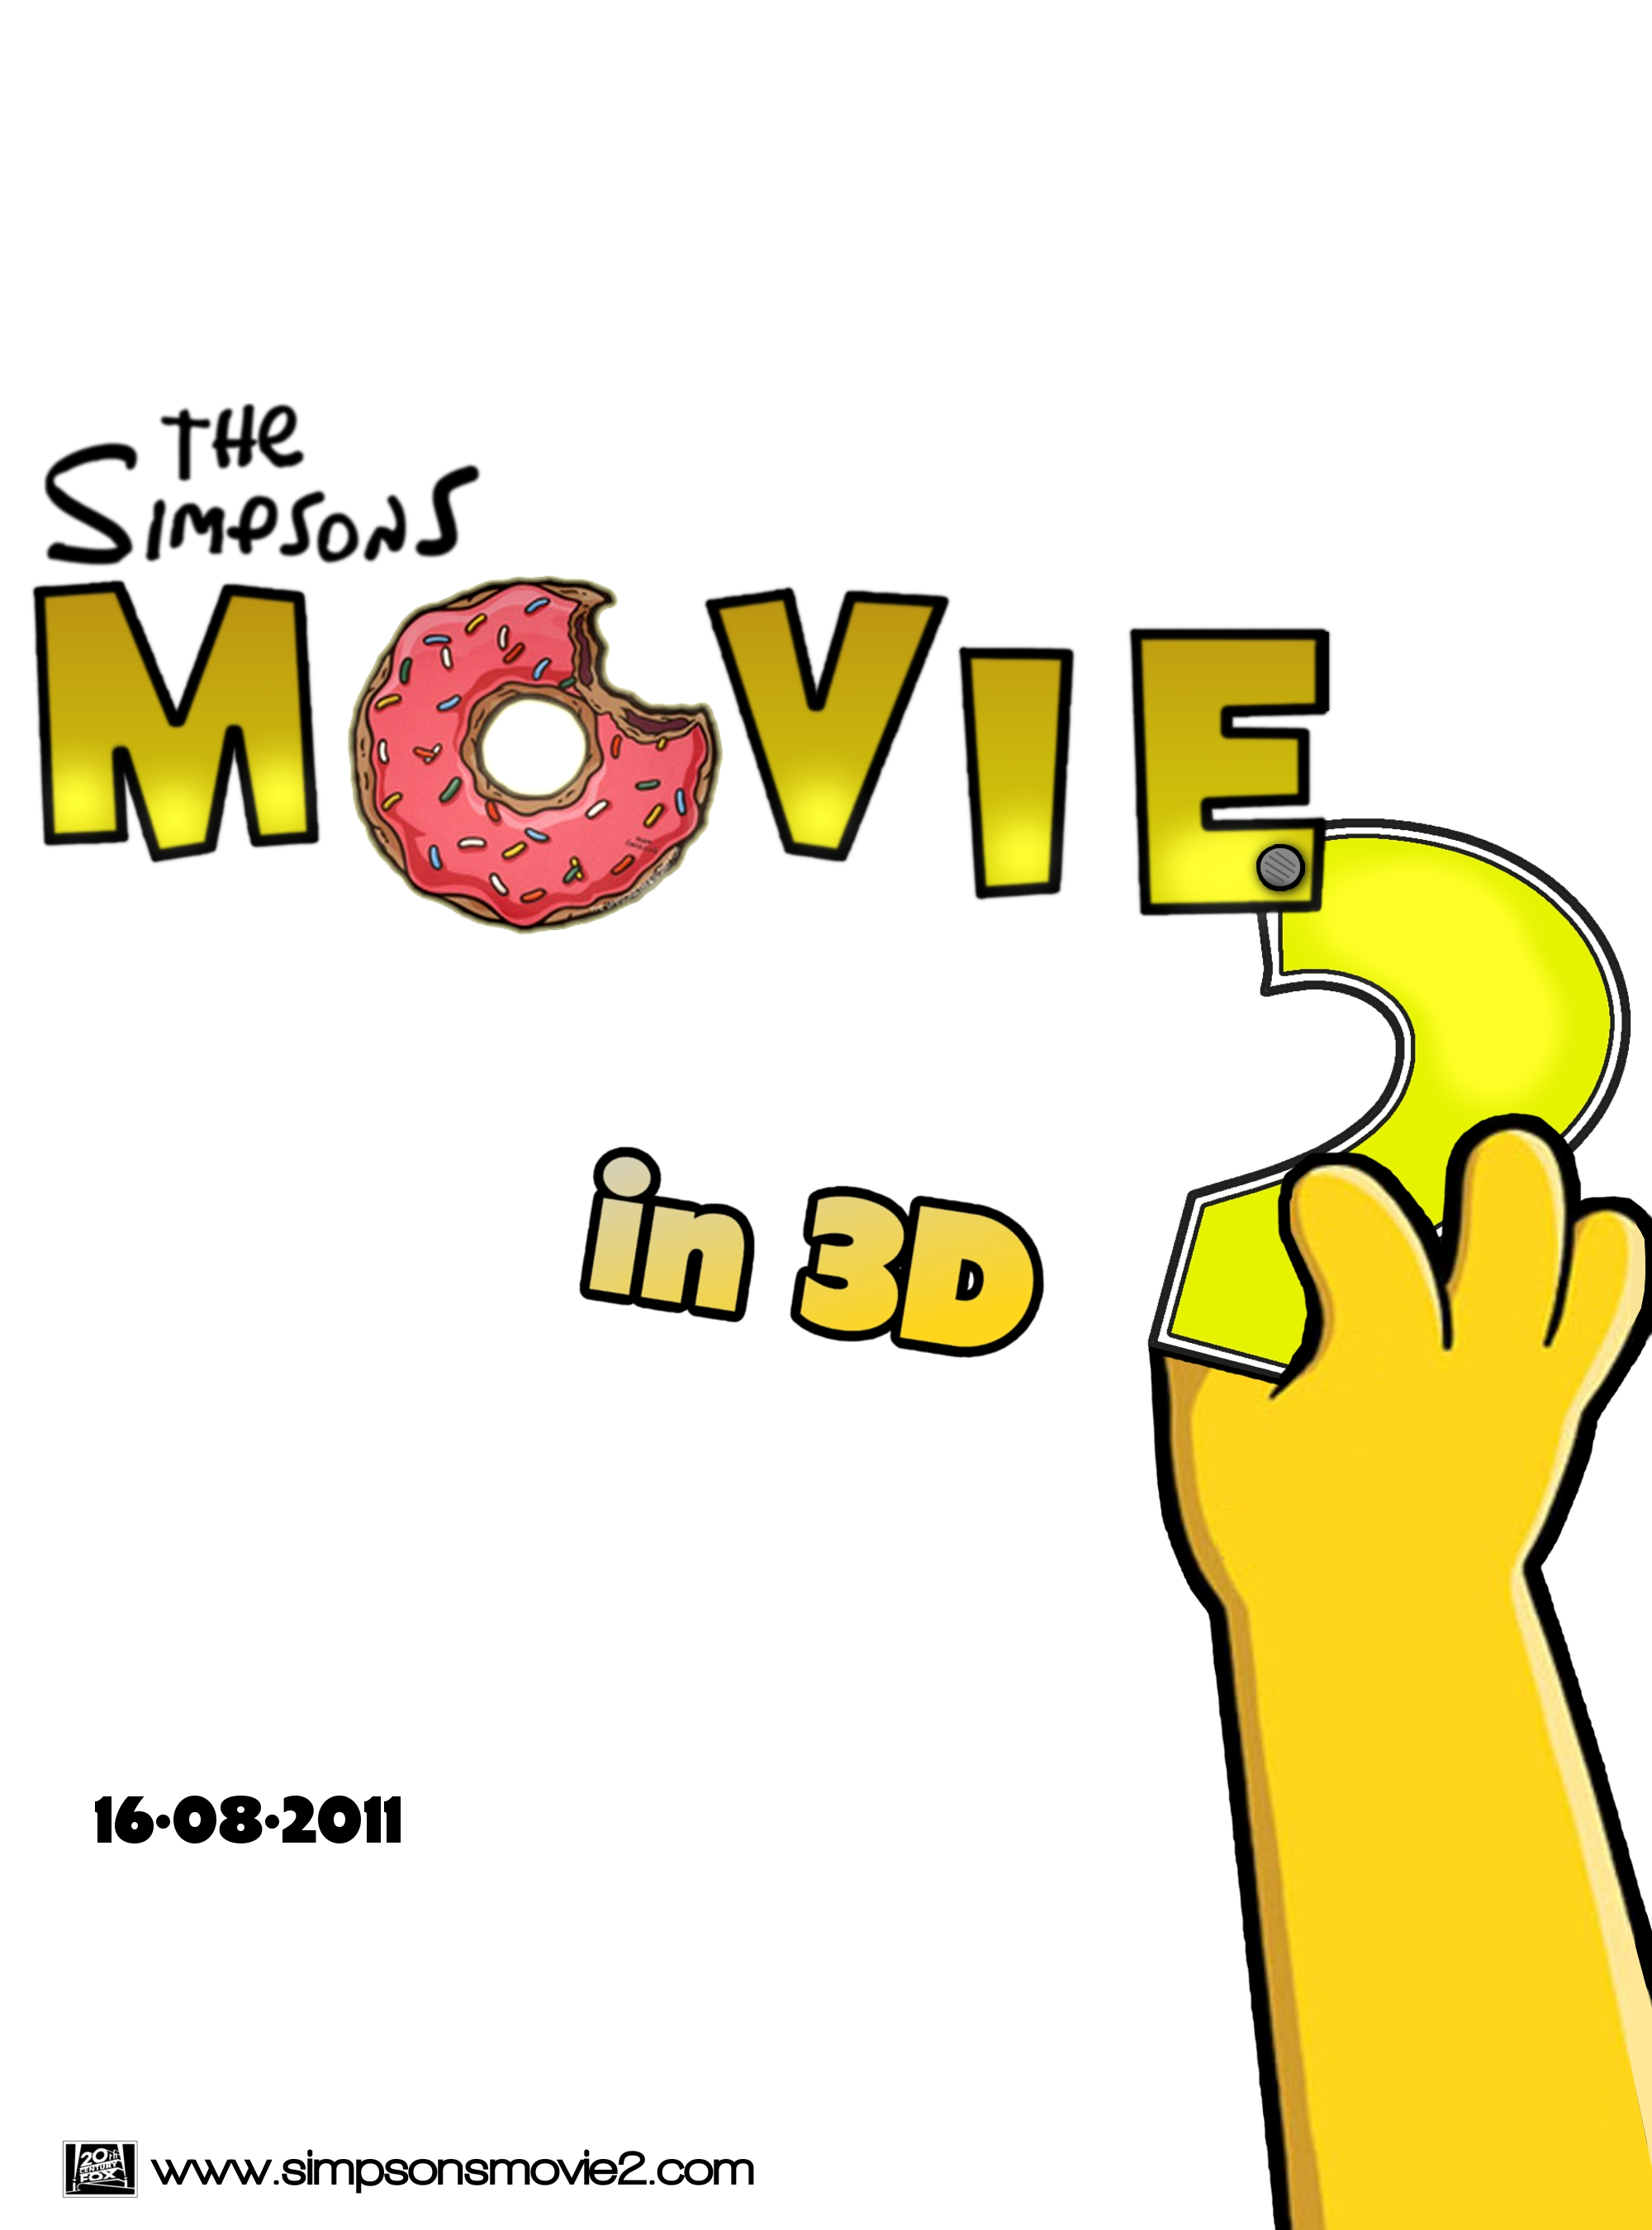 The Simpsons Movie 2 By Masterofnick On Deviantart